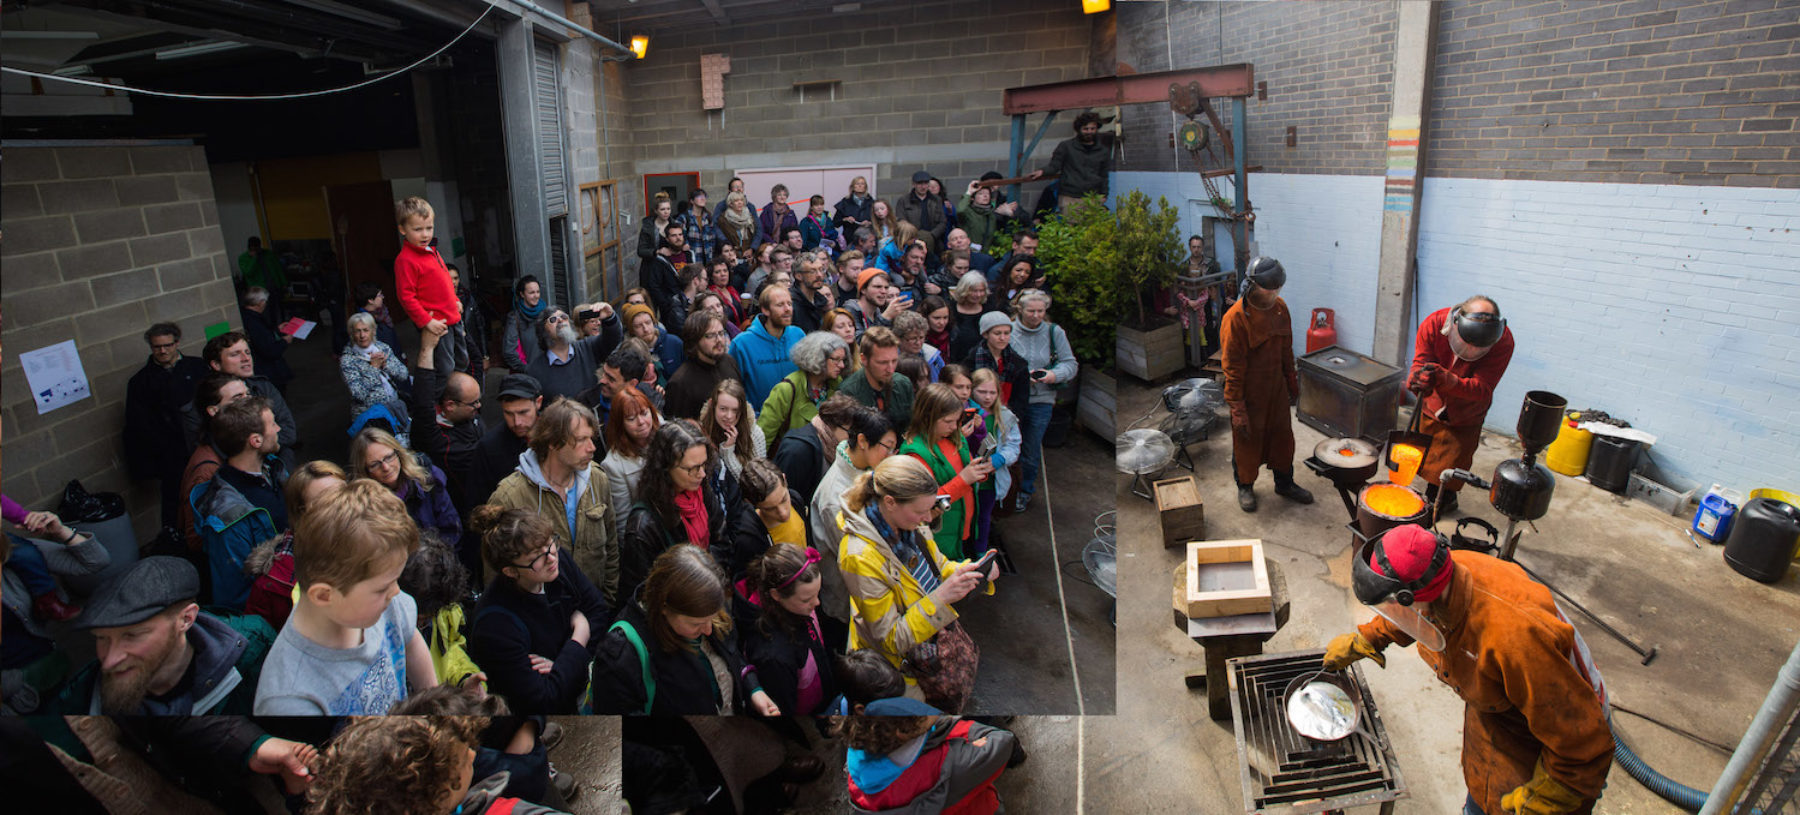 A large group of people are crowded in our sculpture yard watching three people, wearing protective clothing, pour molten metal into a cast.